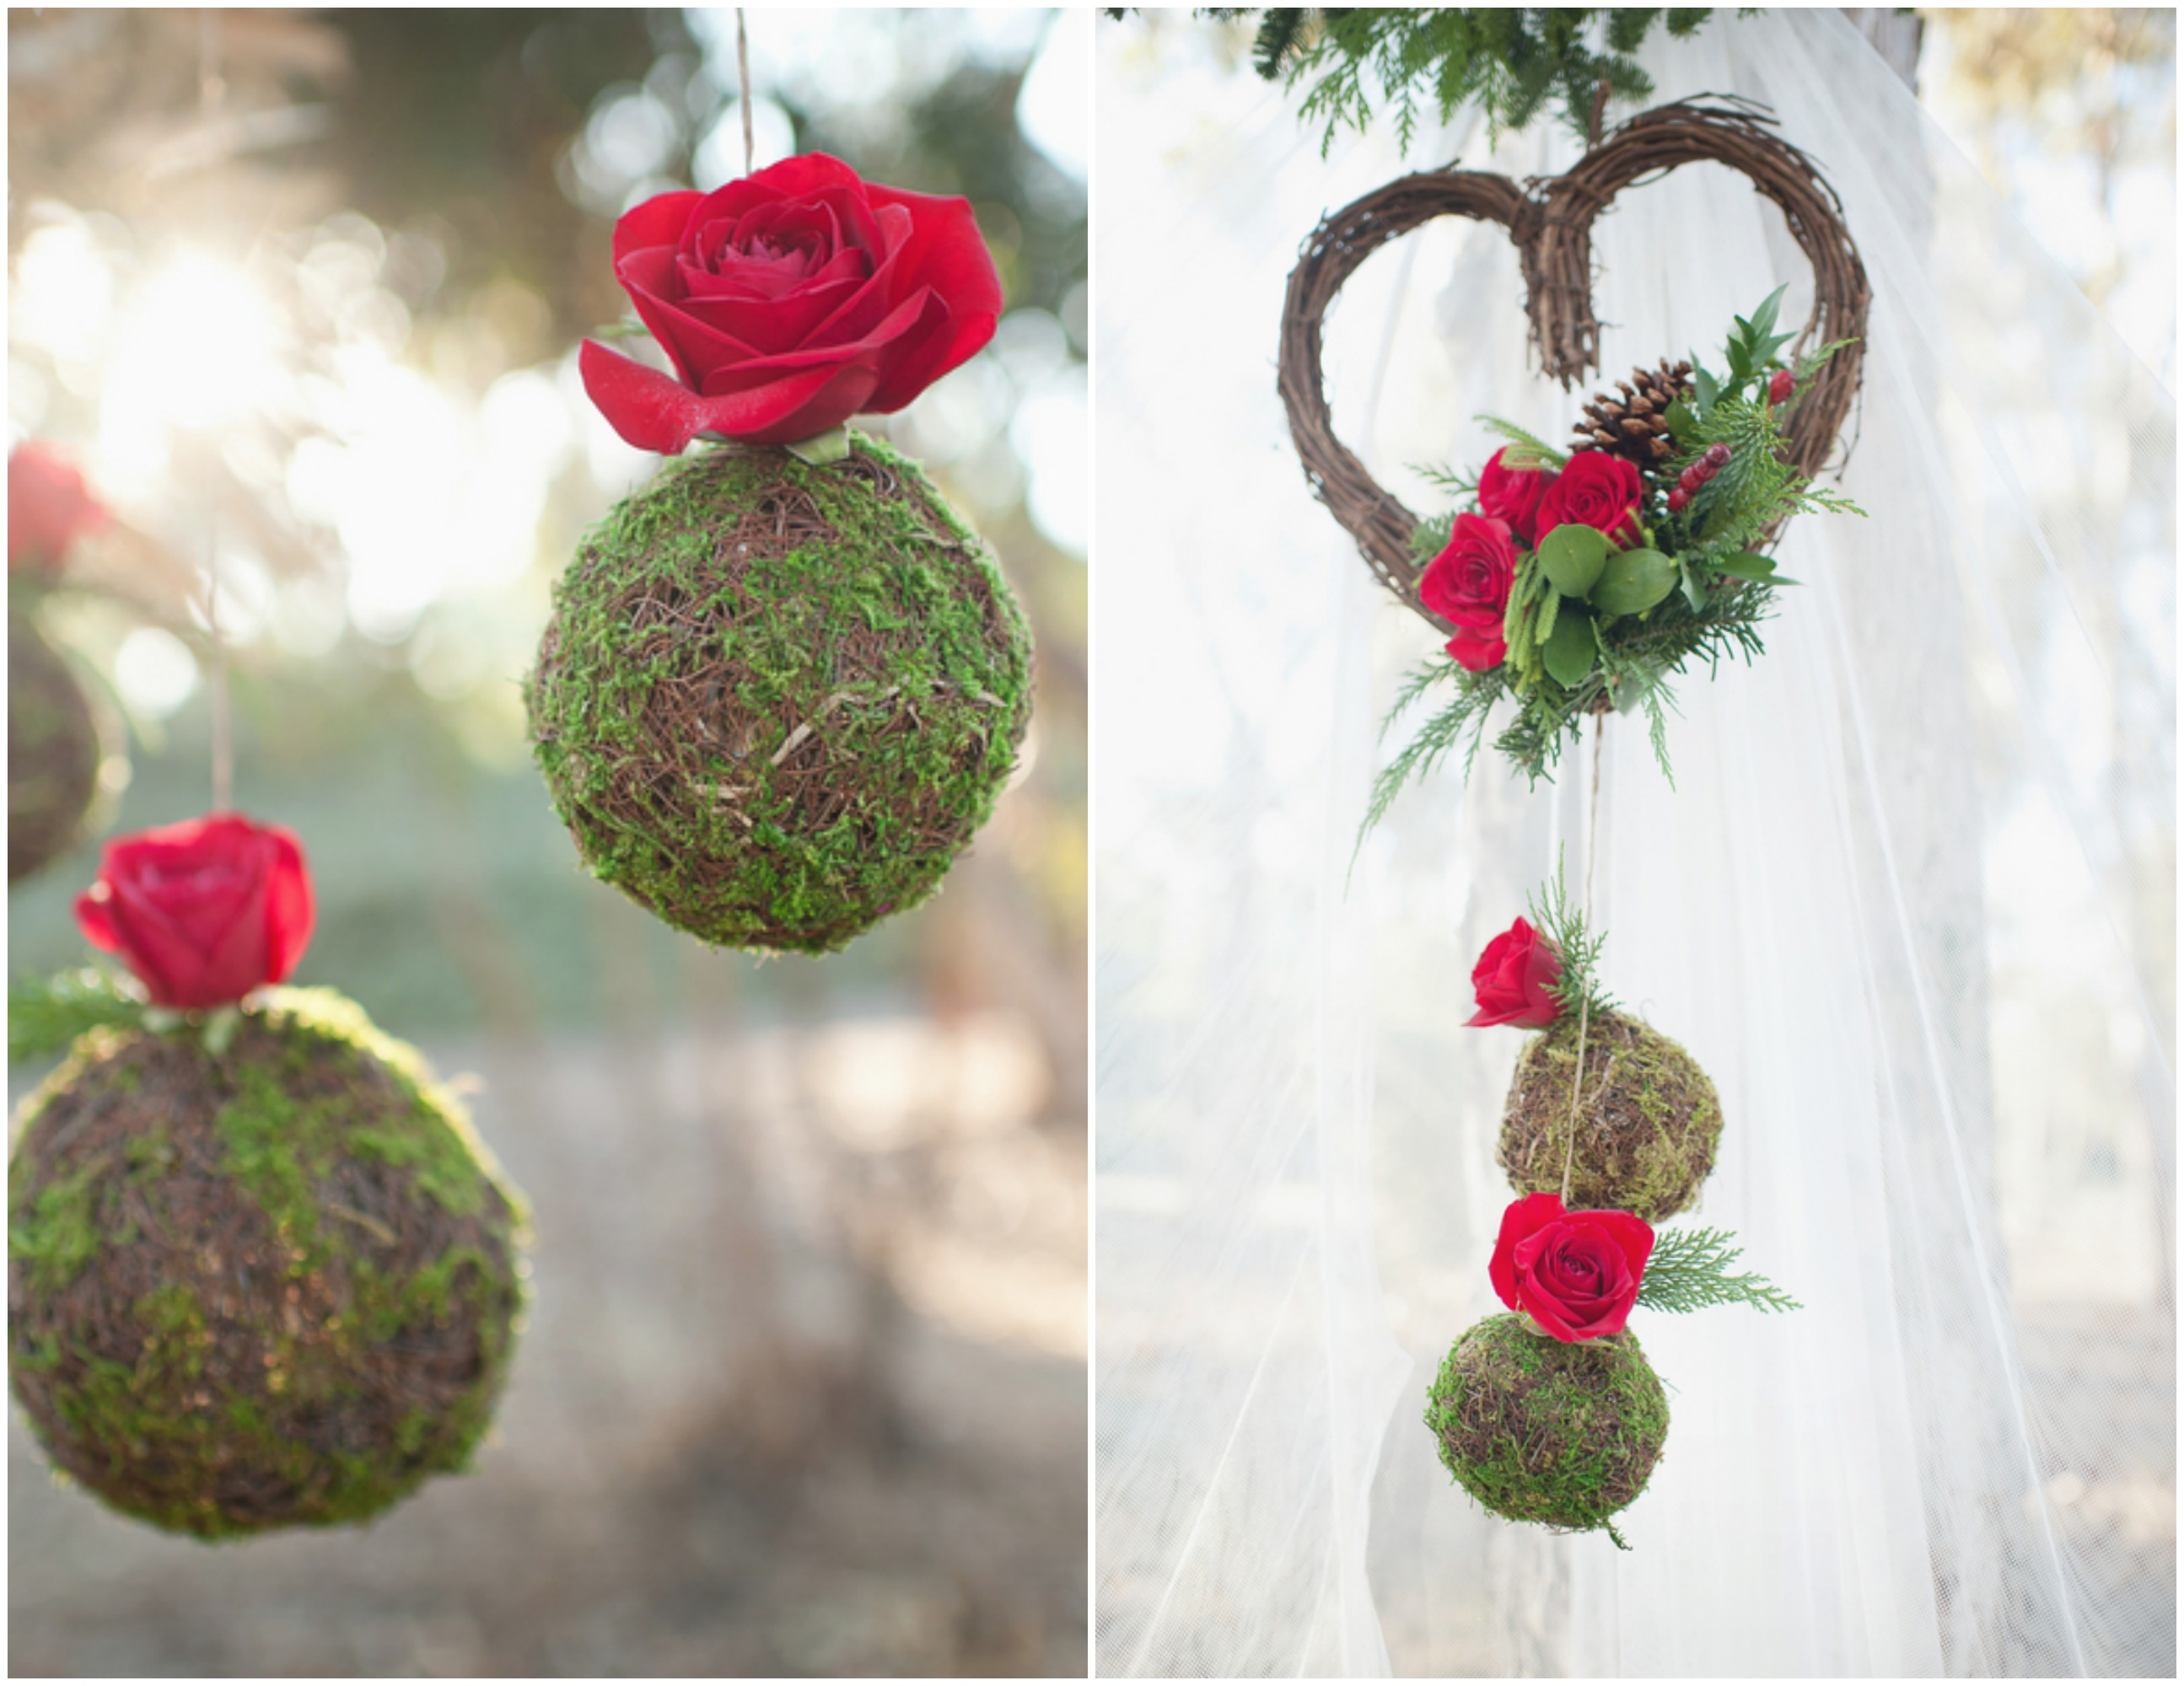 Winter rustic wedding ideas rustic wedding chic for Red decoration for wedding